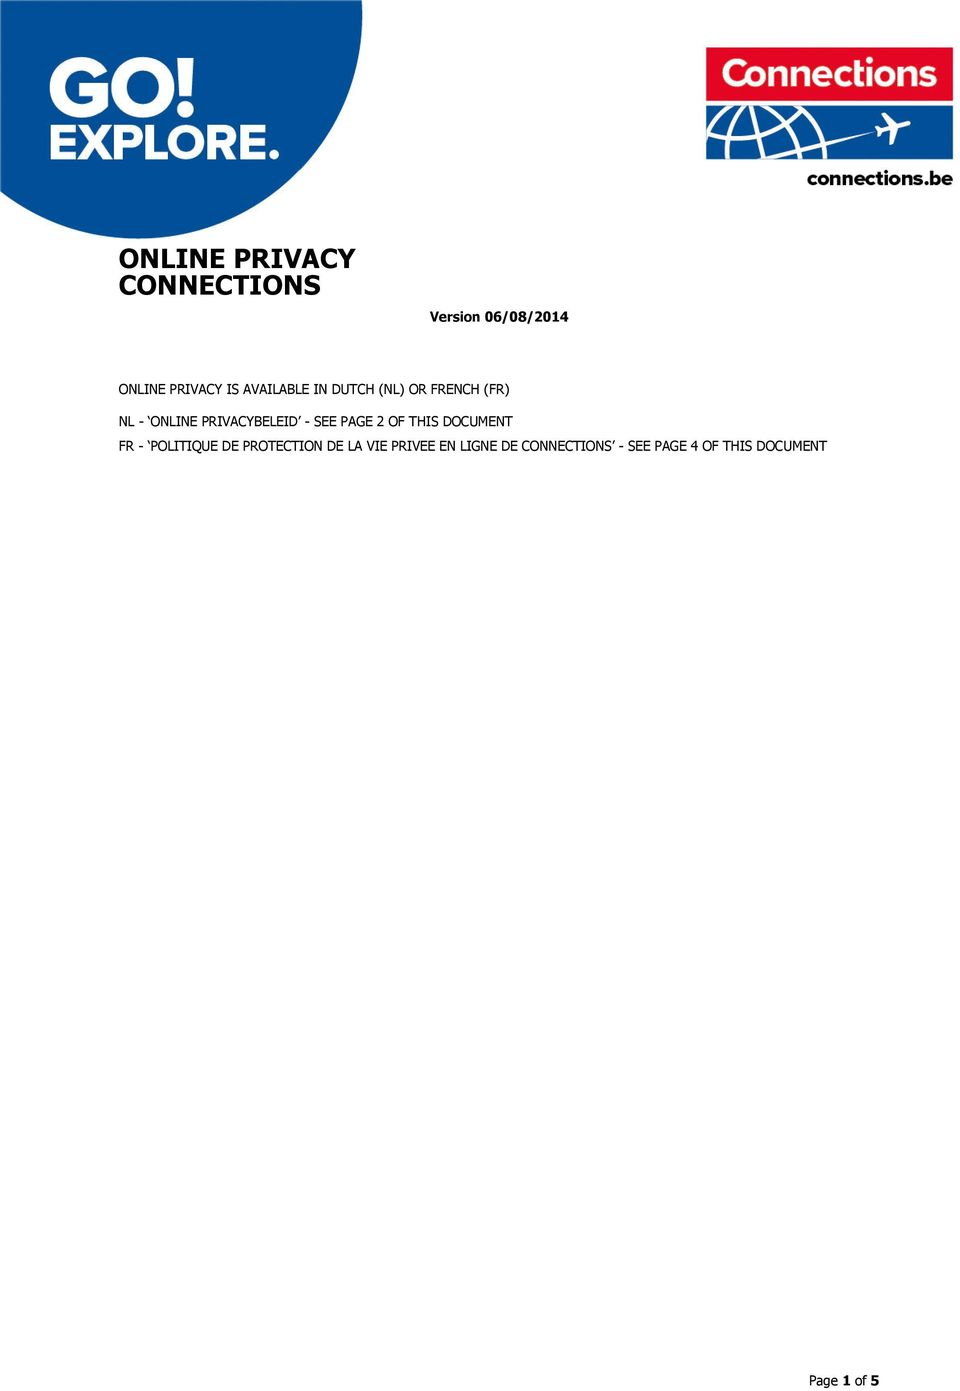 PAGE 2 OF THIS DOCUMENT FR - POLITIQUE DE PROTECTION DE LA